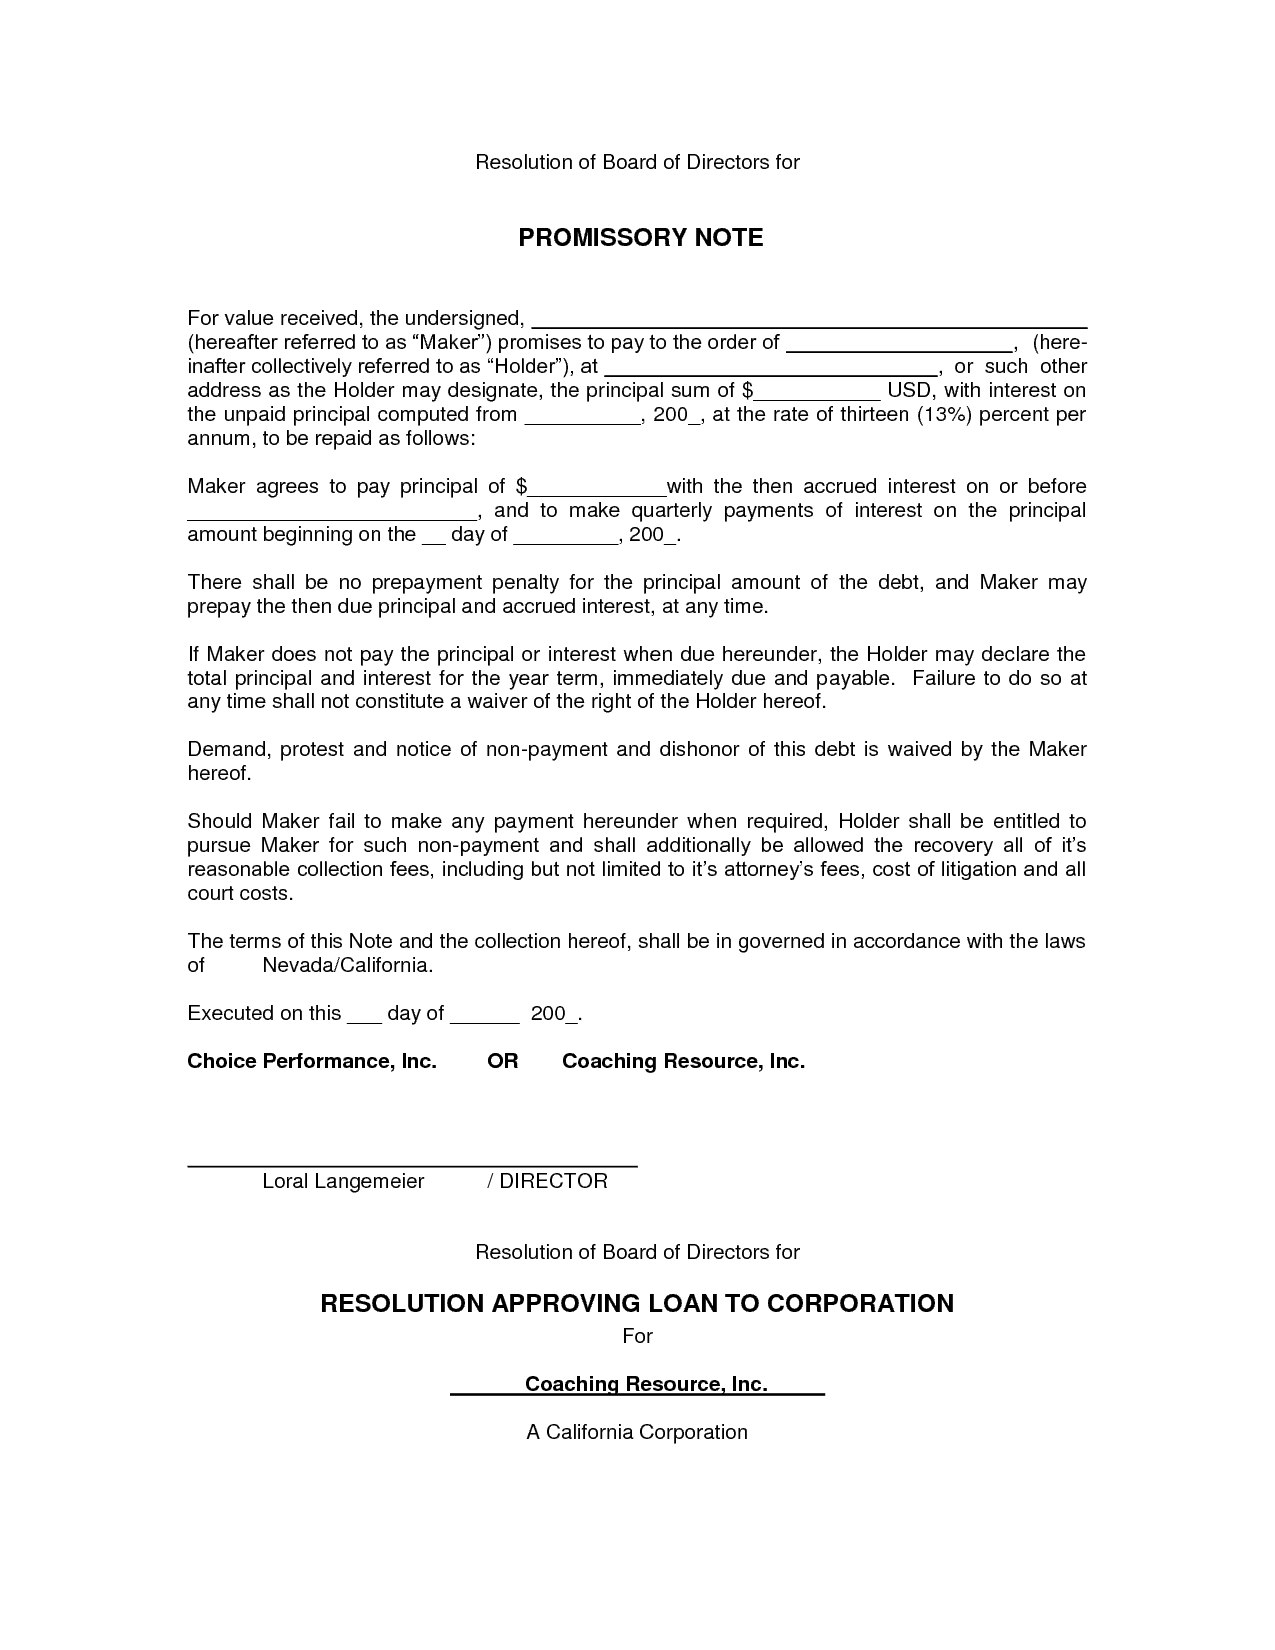 Conditional Promissory Note Template  Promissory Note Template